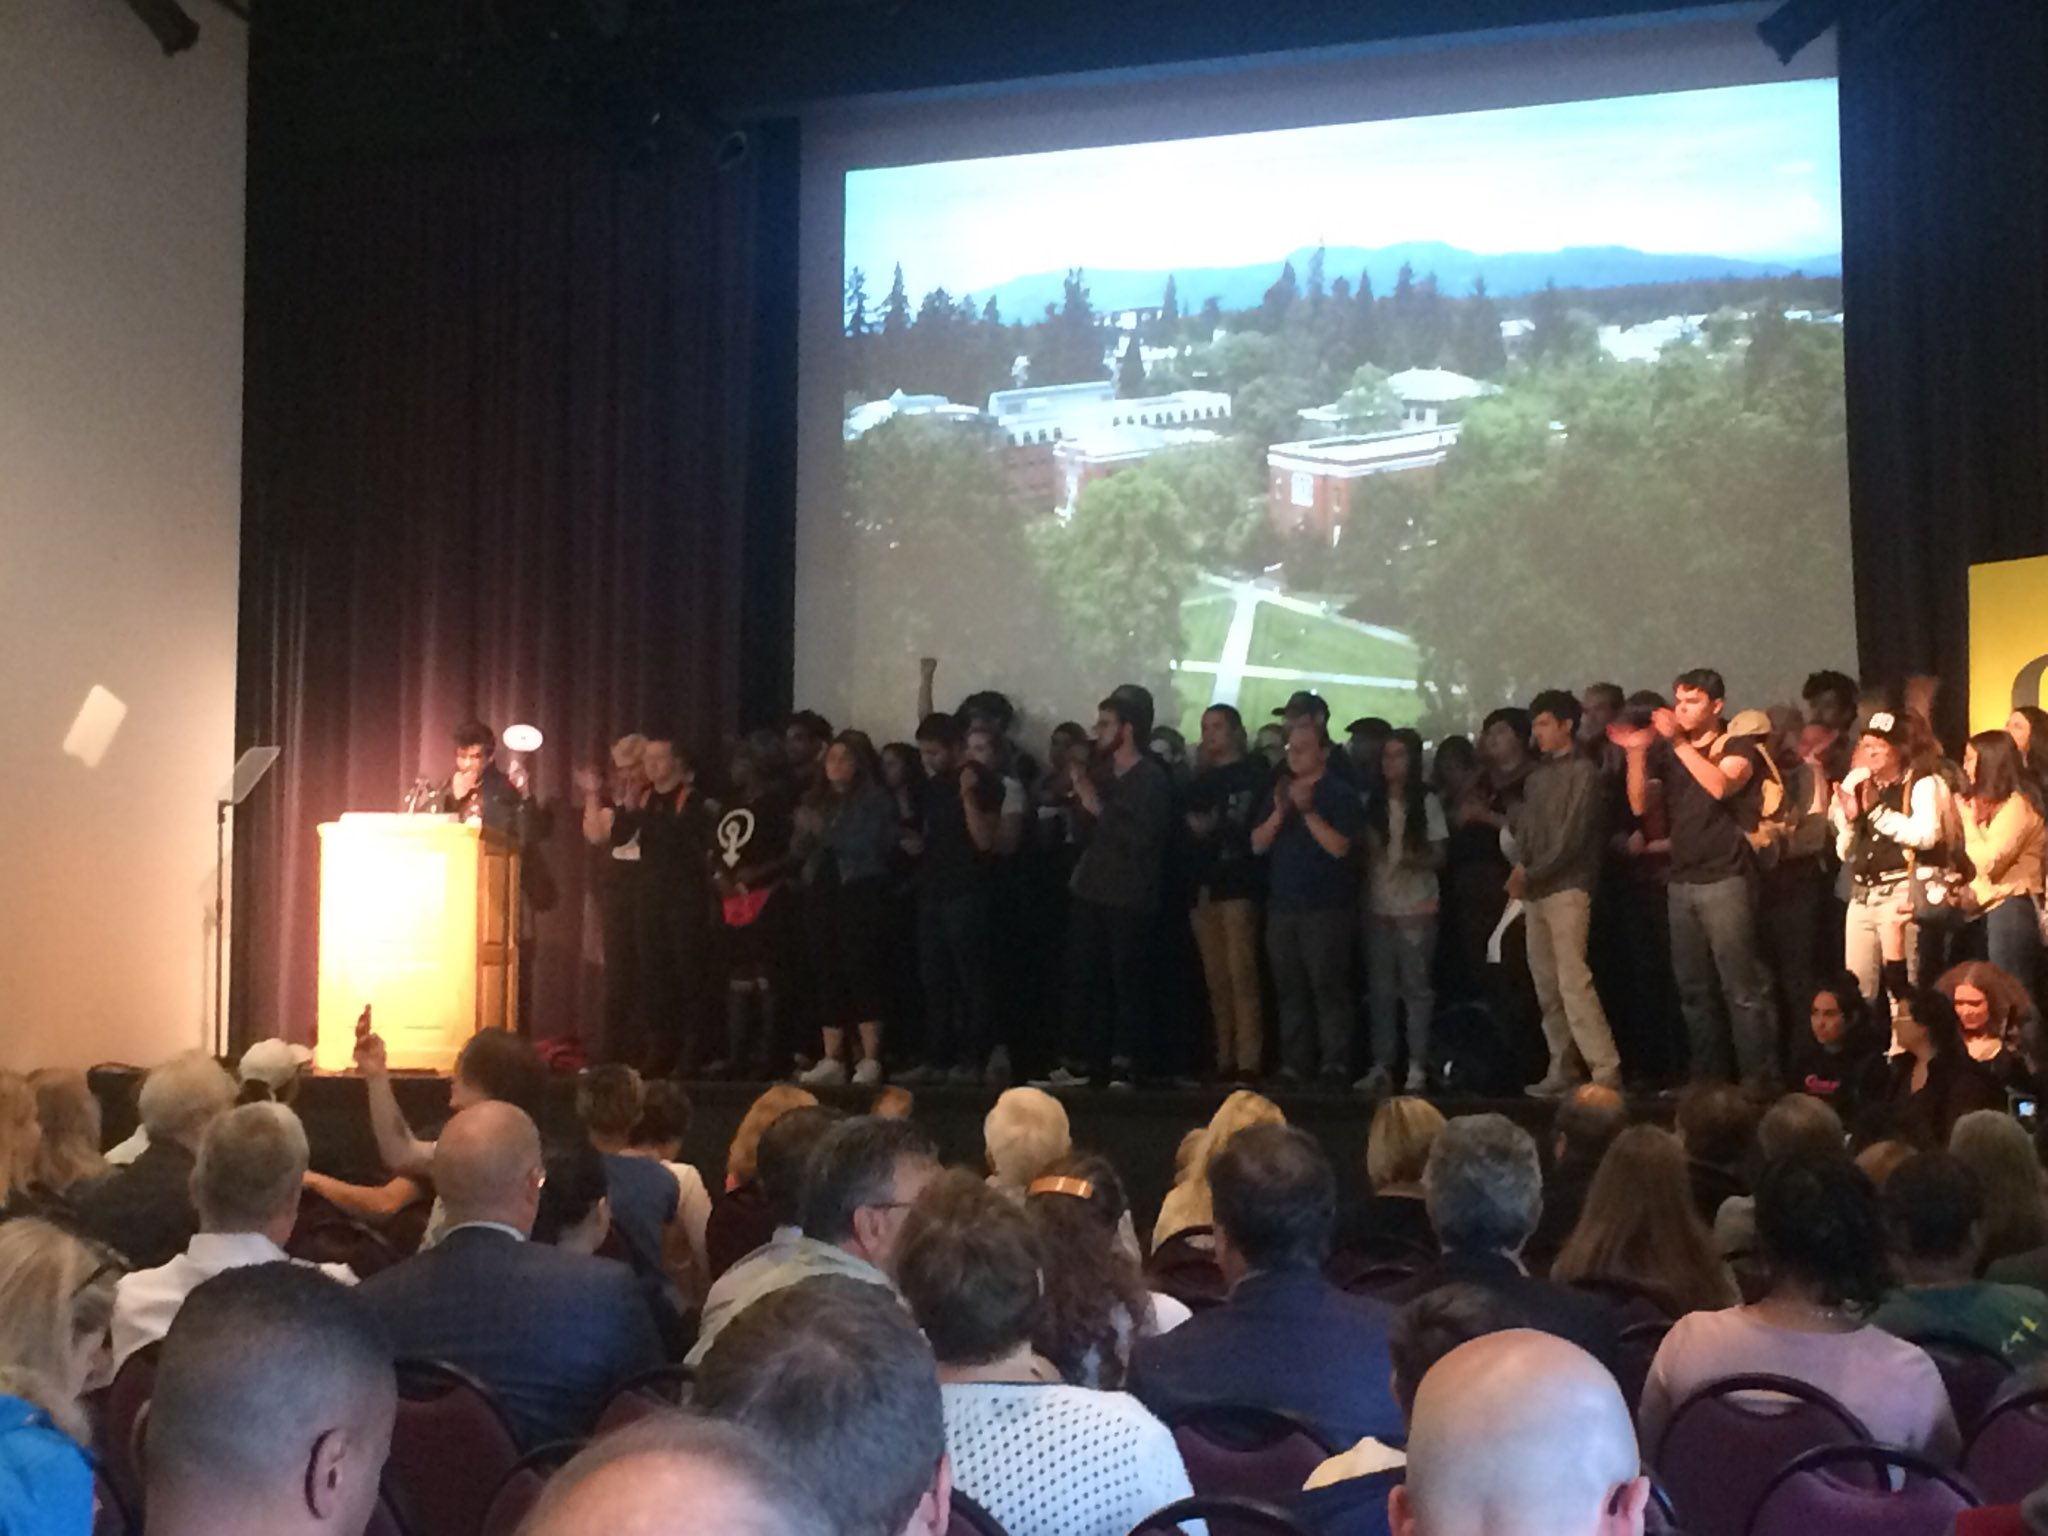 Students stormed the stage with a megaphone and sign ahead of University of Oregon President Michael Schill's State of the University address on Friday. (SBG)